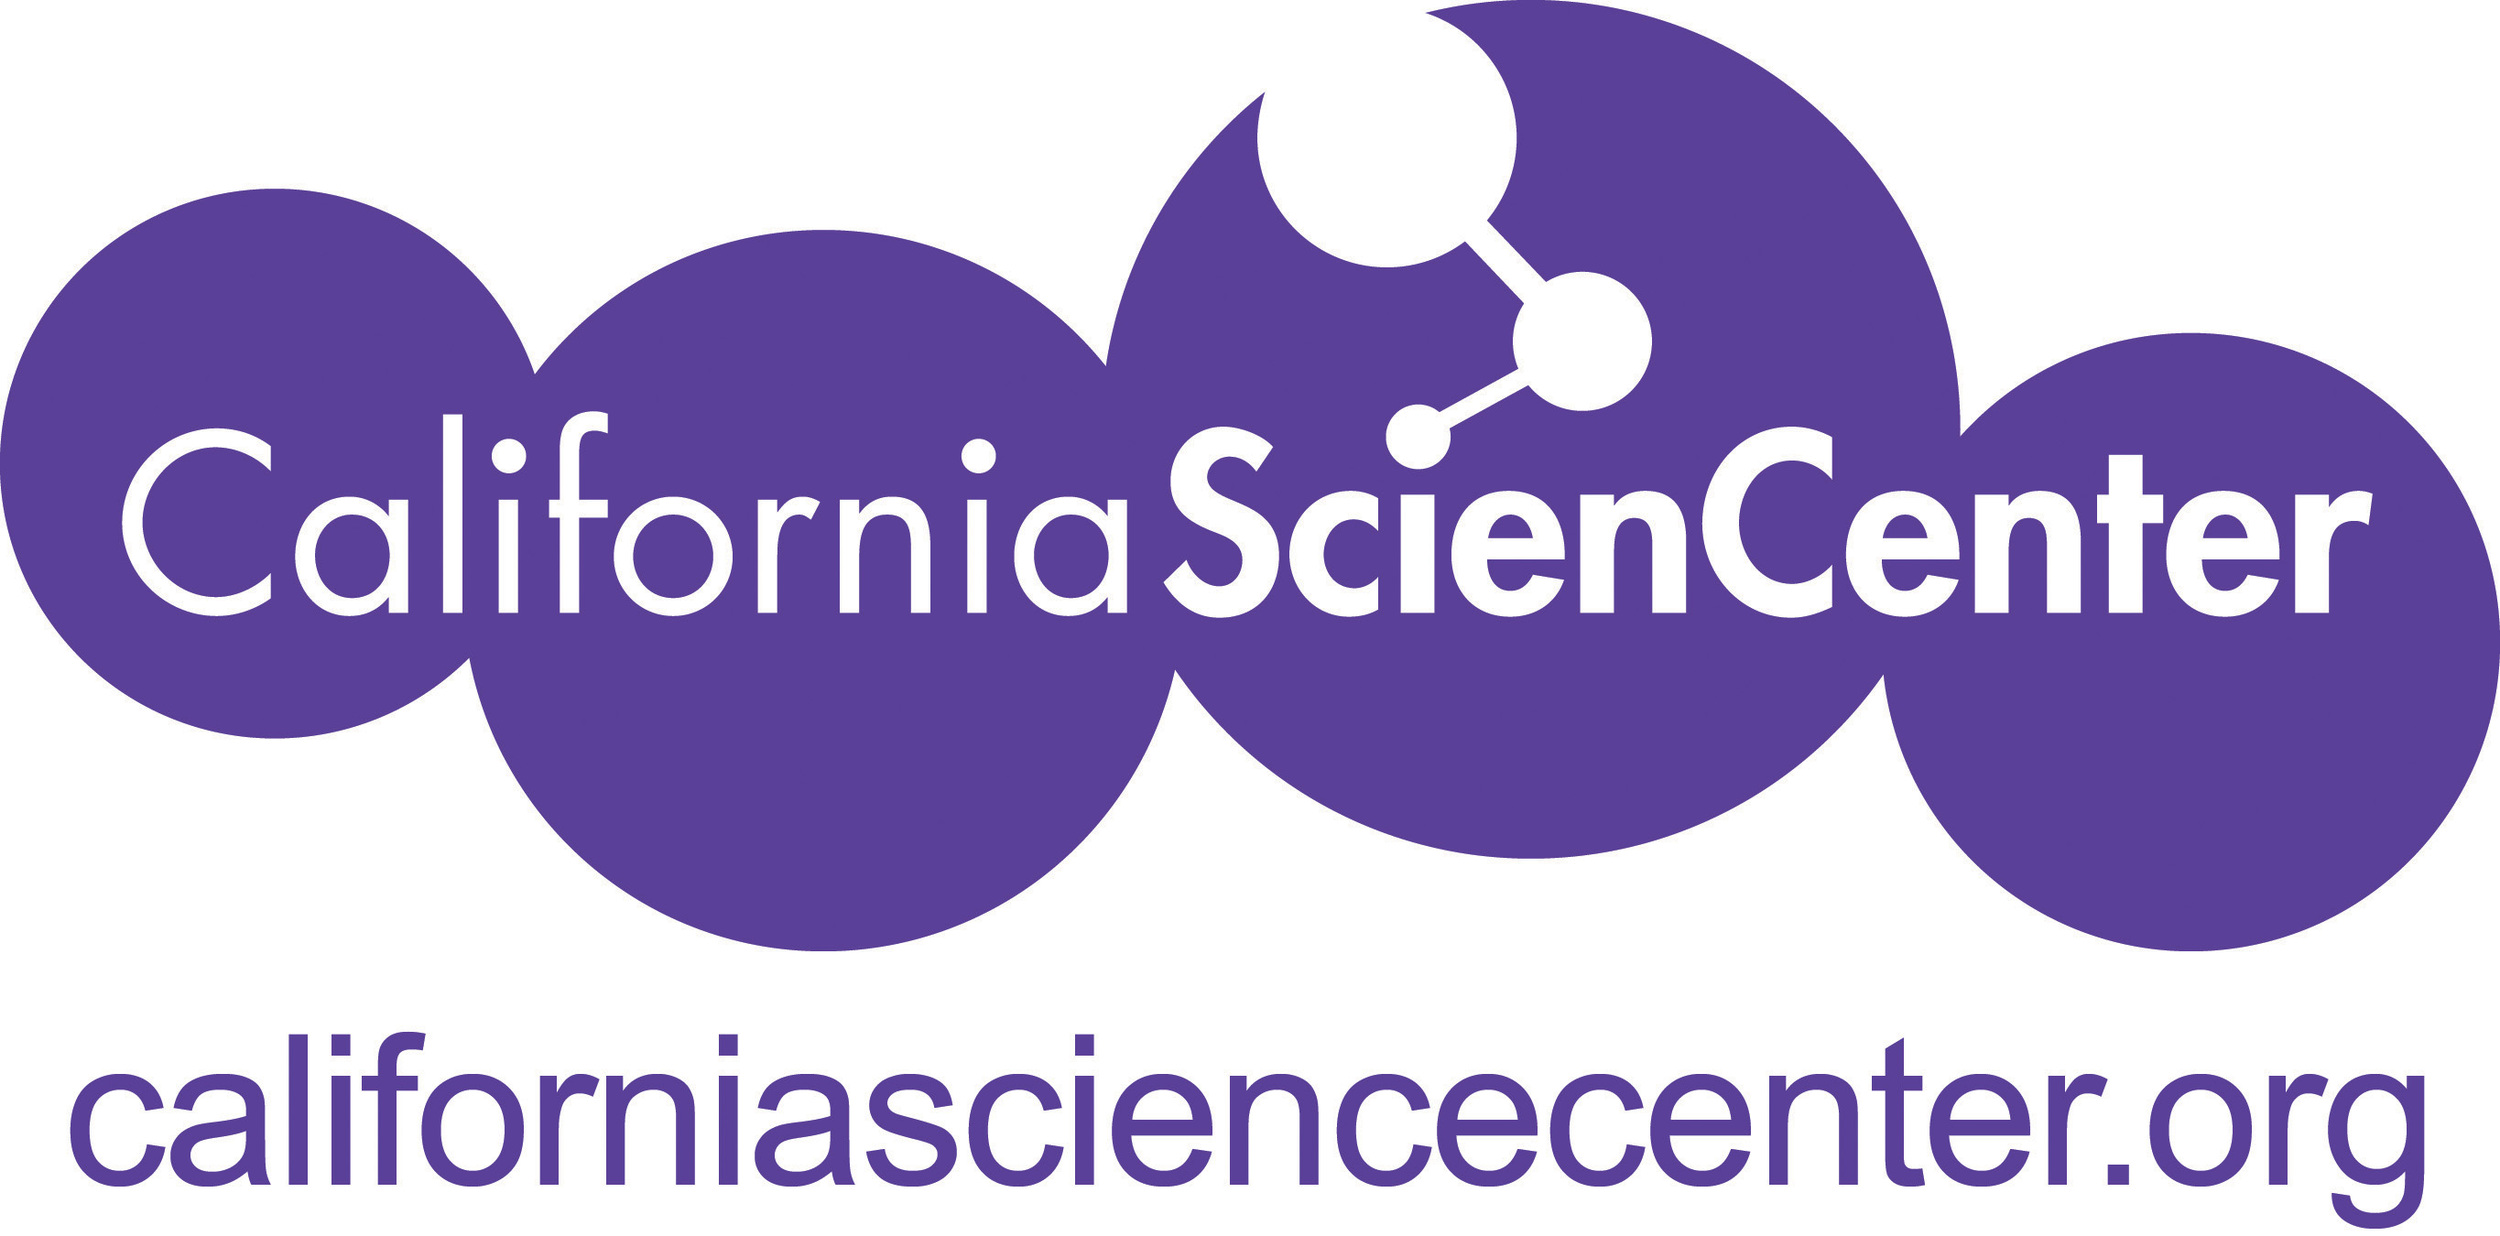 California-Science-logo.jpg